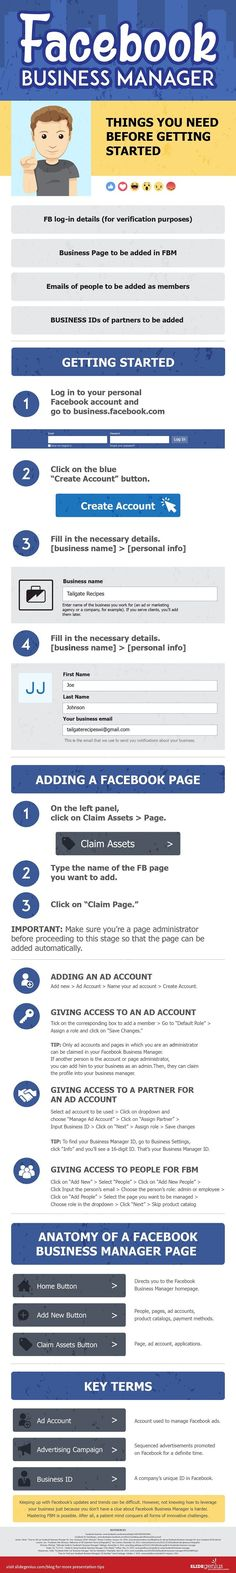 A Step-by-Step Guide to Facebook Business Manager - infographic...  Figure out more by visiting the photo  Learn more at http://webtipsforyou.com/biz/how-to-laser-target-the-rich-and-wealthy-buyers-on-facebook/